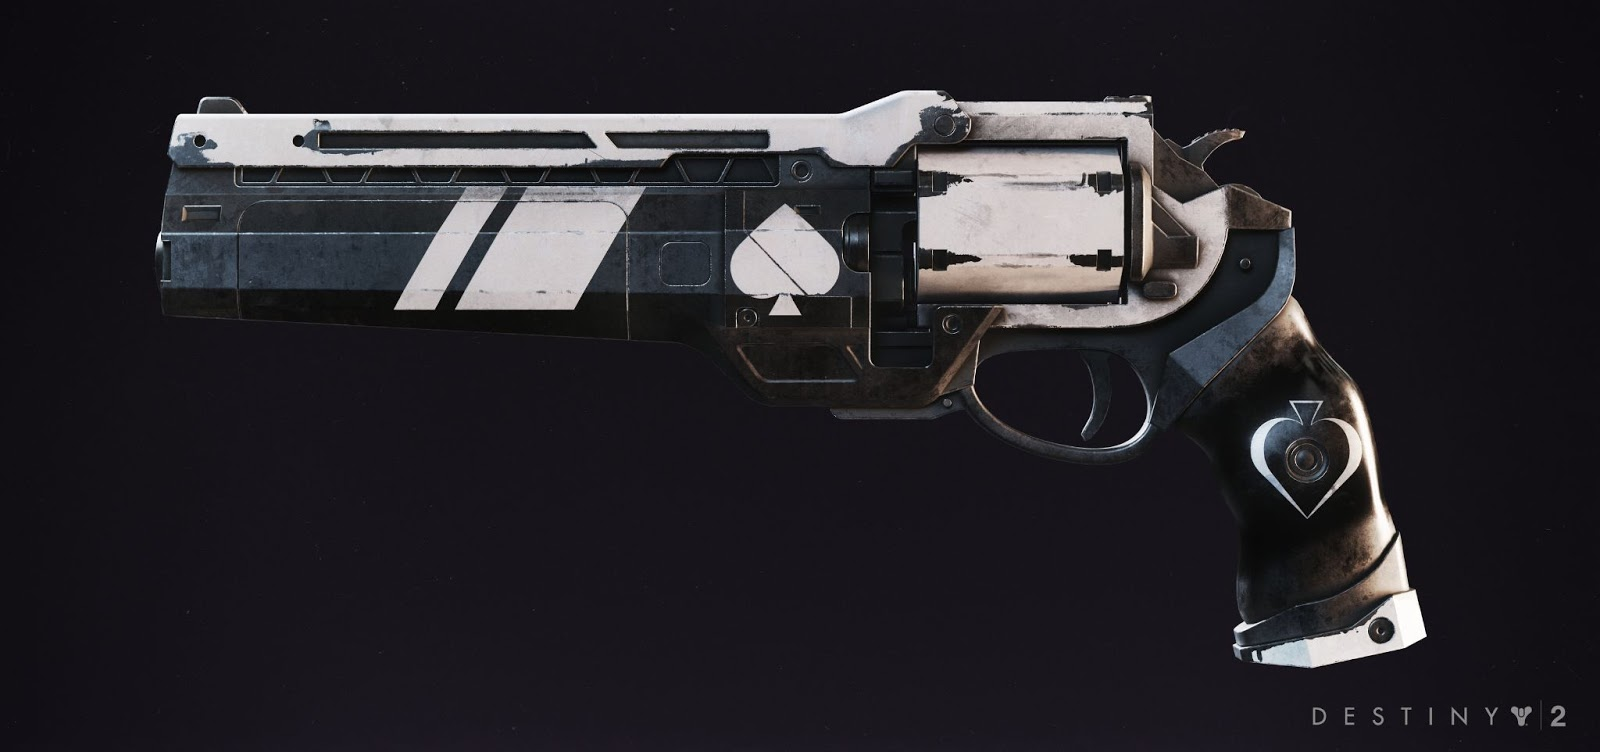 Ace of Spades in Destiny